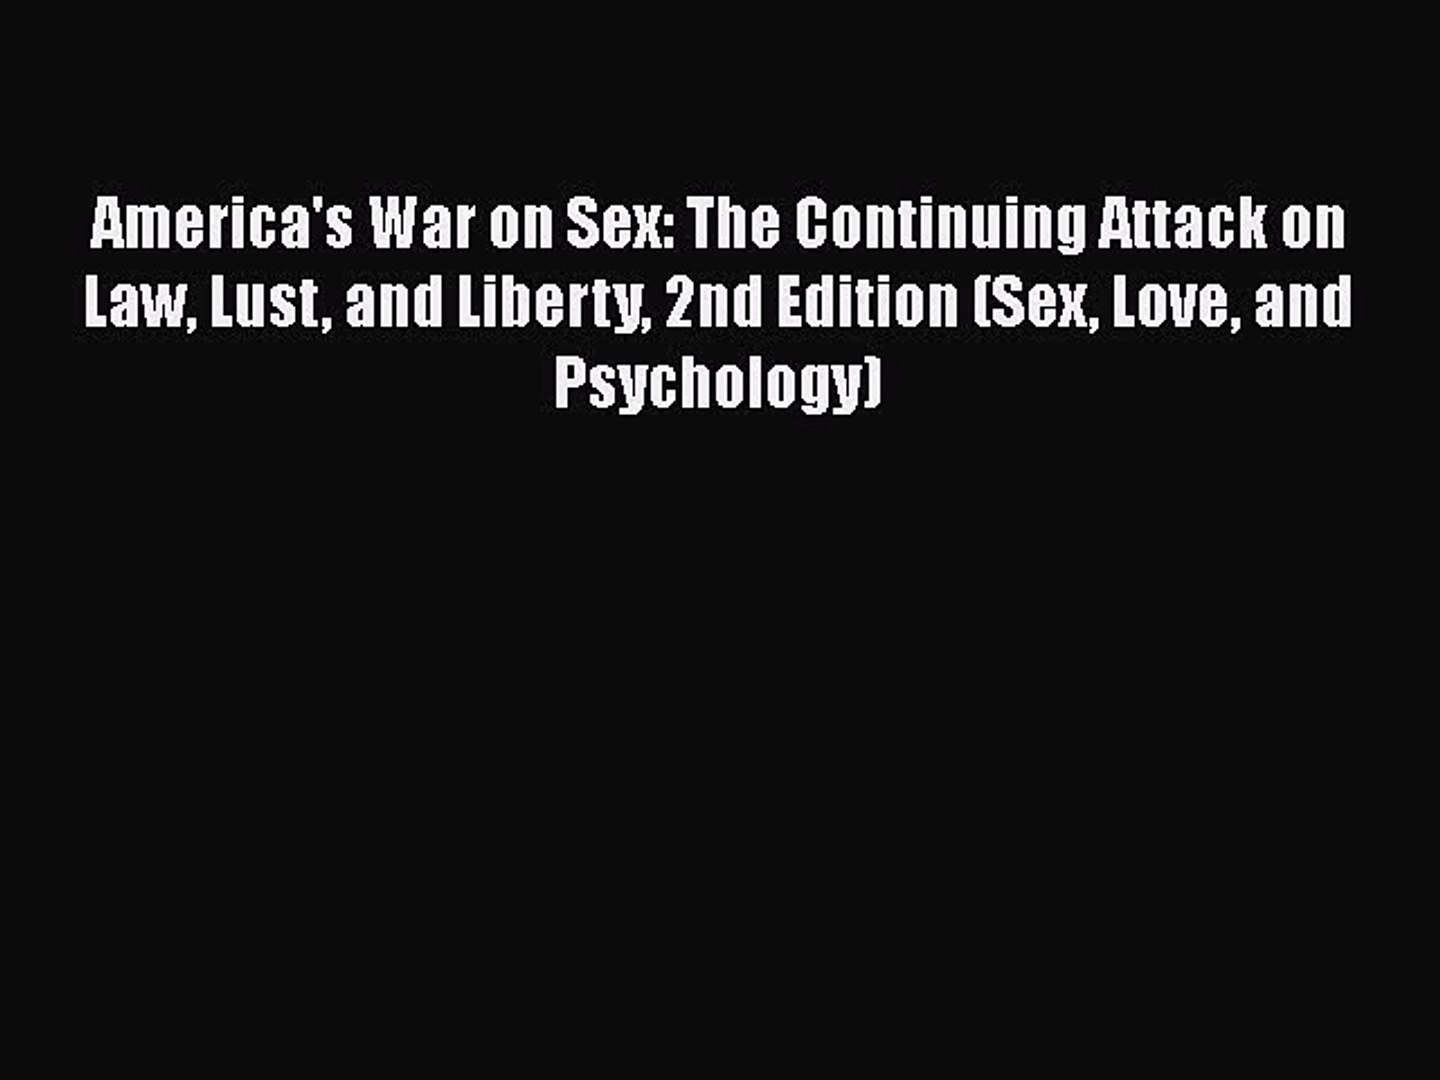 PDF America's War on Sex: The Continuing Attack on Law Lust and Liberty 2nd Edition (Sex Love